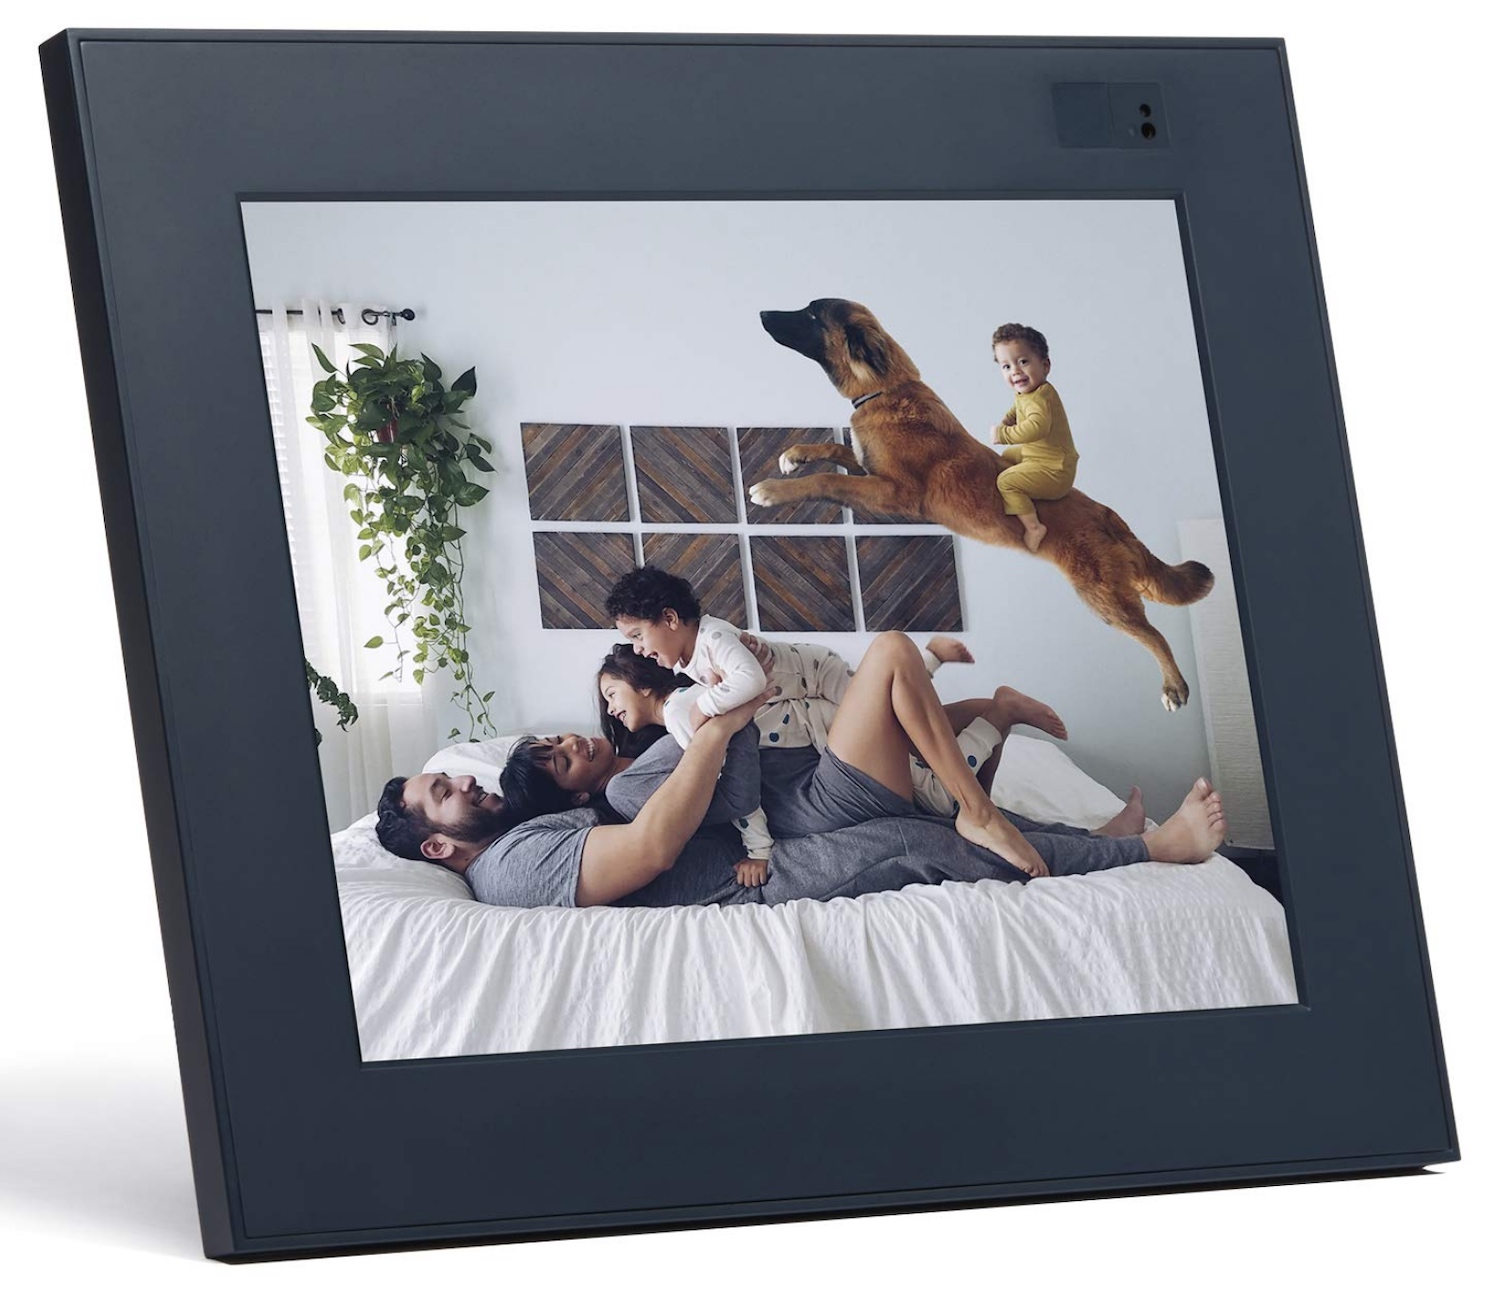 Image: Aura makes a 9.7-inch frame with 2048×1536 resolution, which shows your memories in cris...